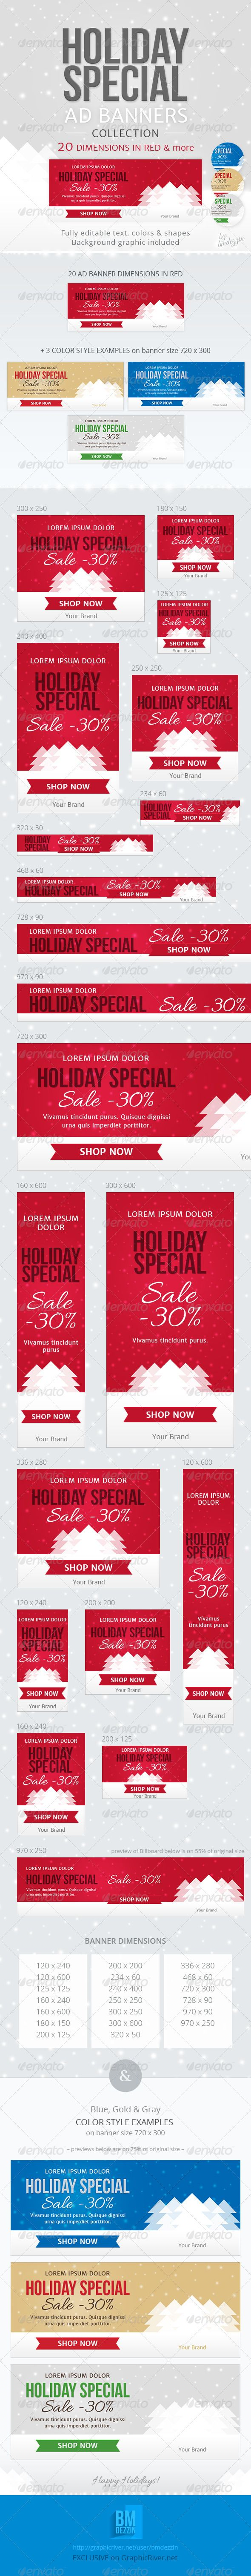 Holiday Special Web Ad Banners  #GraphicRiver